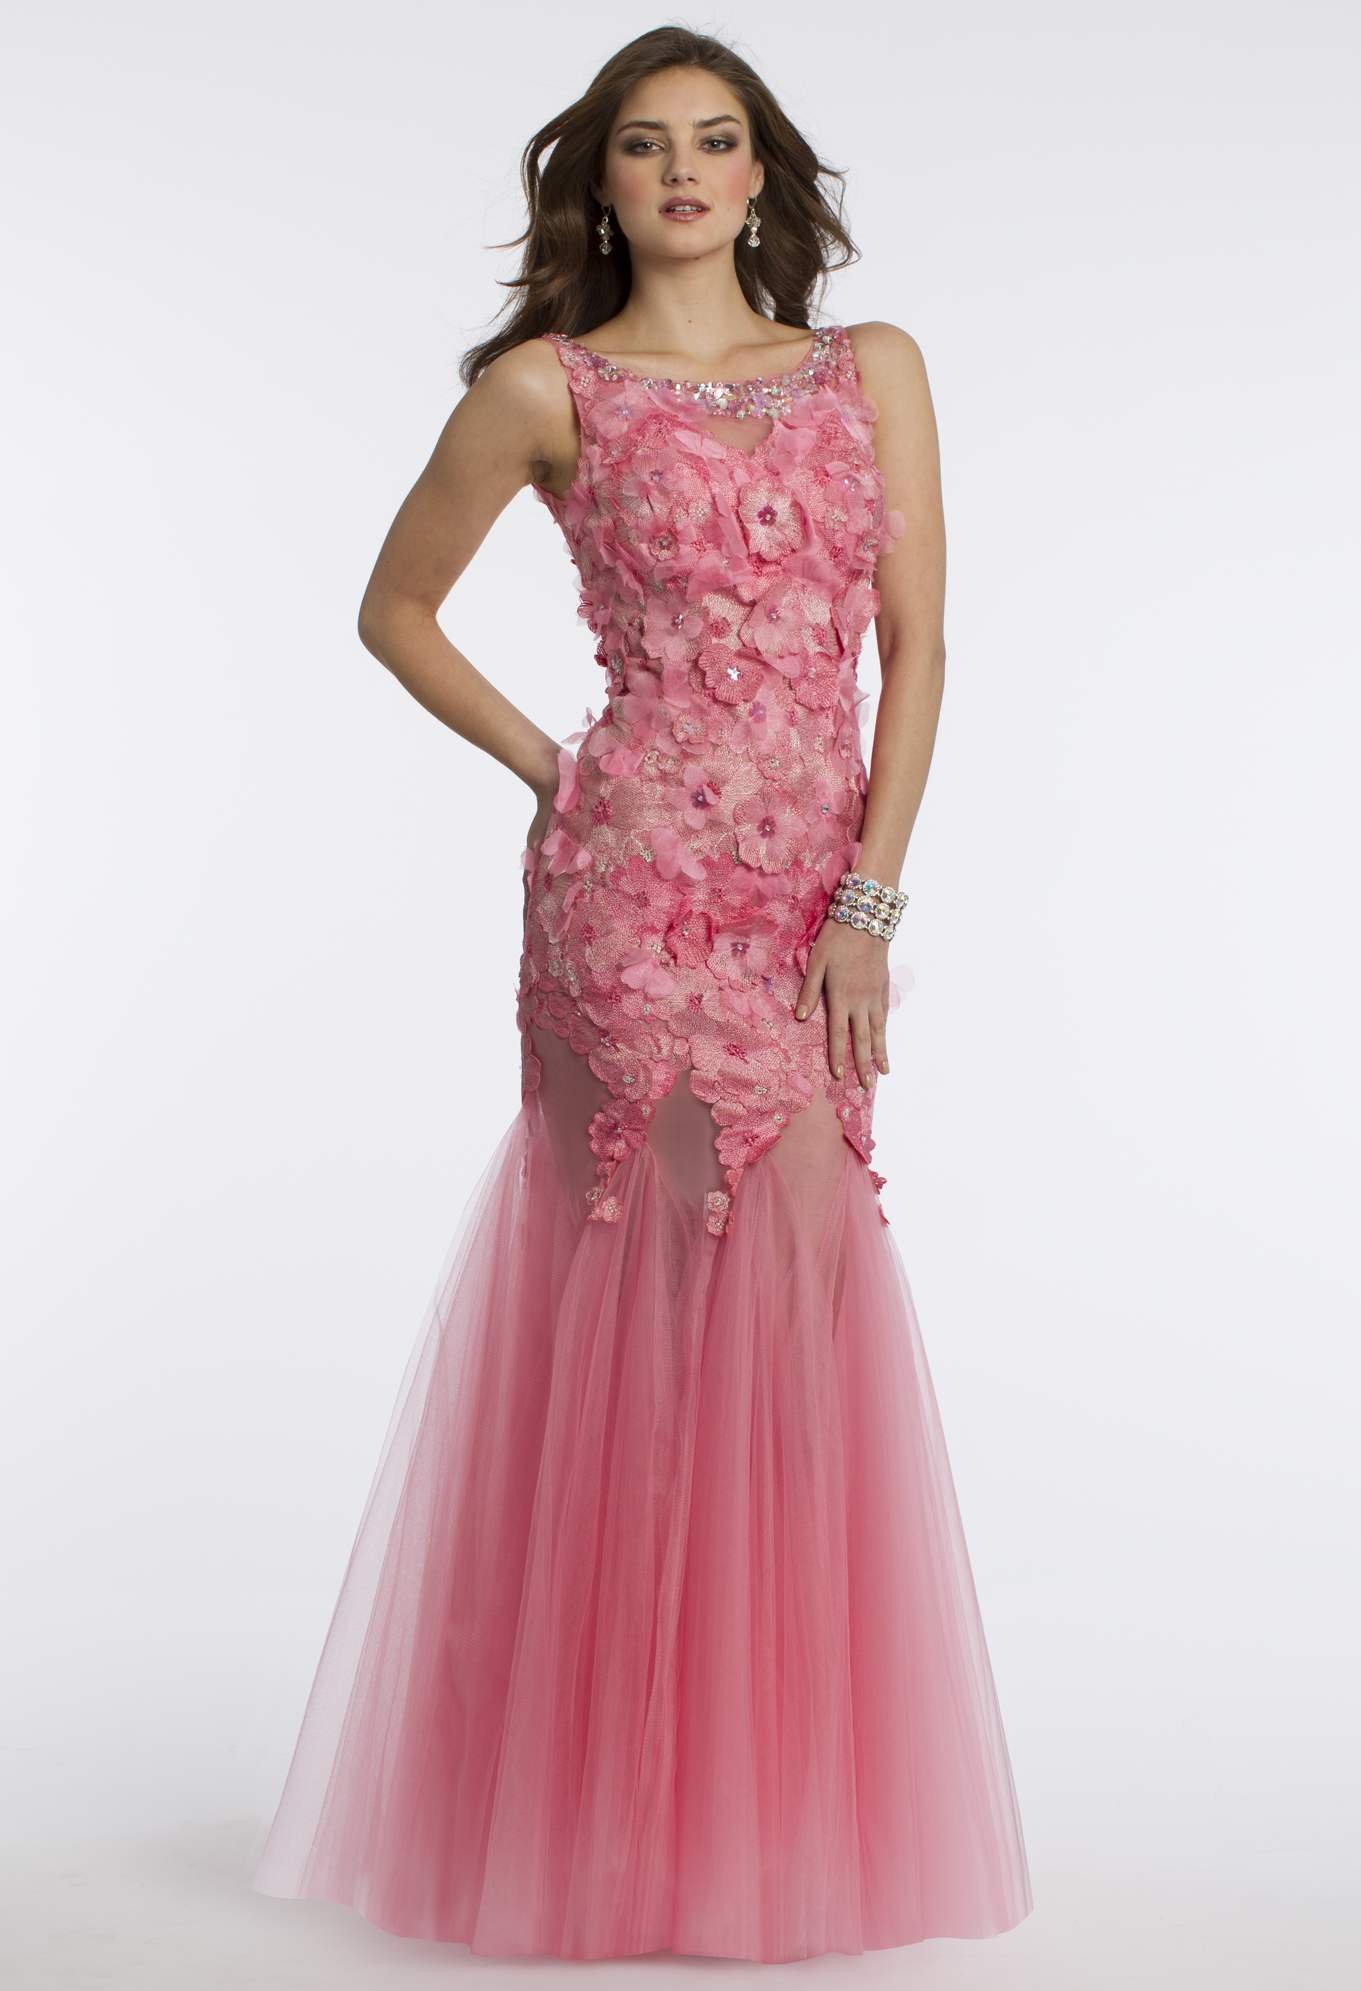 Camille La Vie Tulle and 3-D Flower Dress with Open Back for Prom in ...